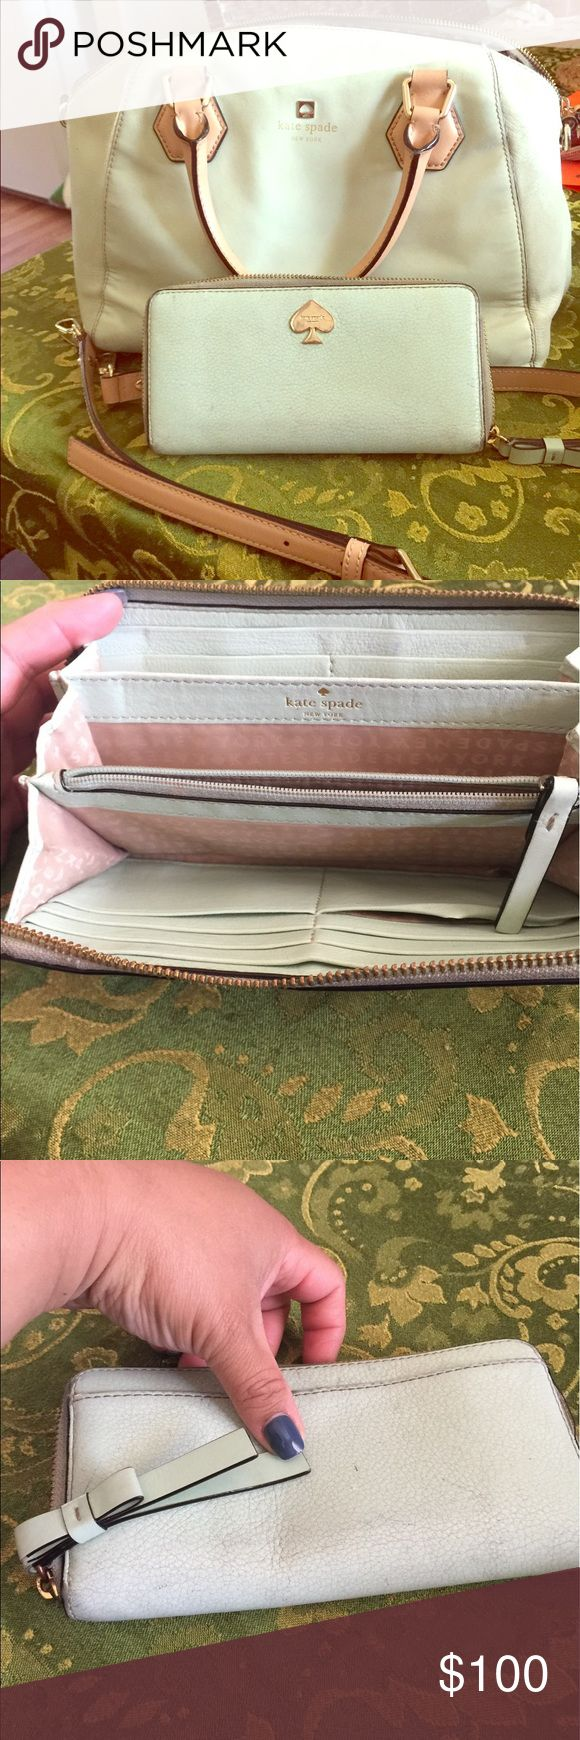 Kate spade ♠️ 💥💥💥Sale💥✋️set Used has life but used and inside has some stains, outside leather is good !! Dirty but good condition same as wallet !! Expensive set but needs ❤️ (cleaning) kate spade Bags Crossbody Bags